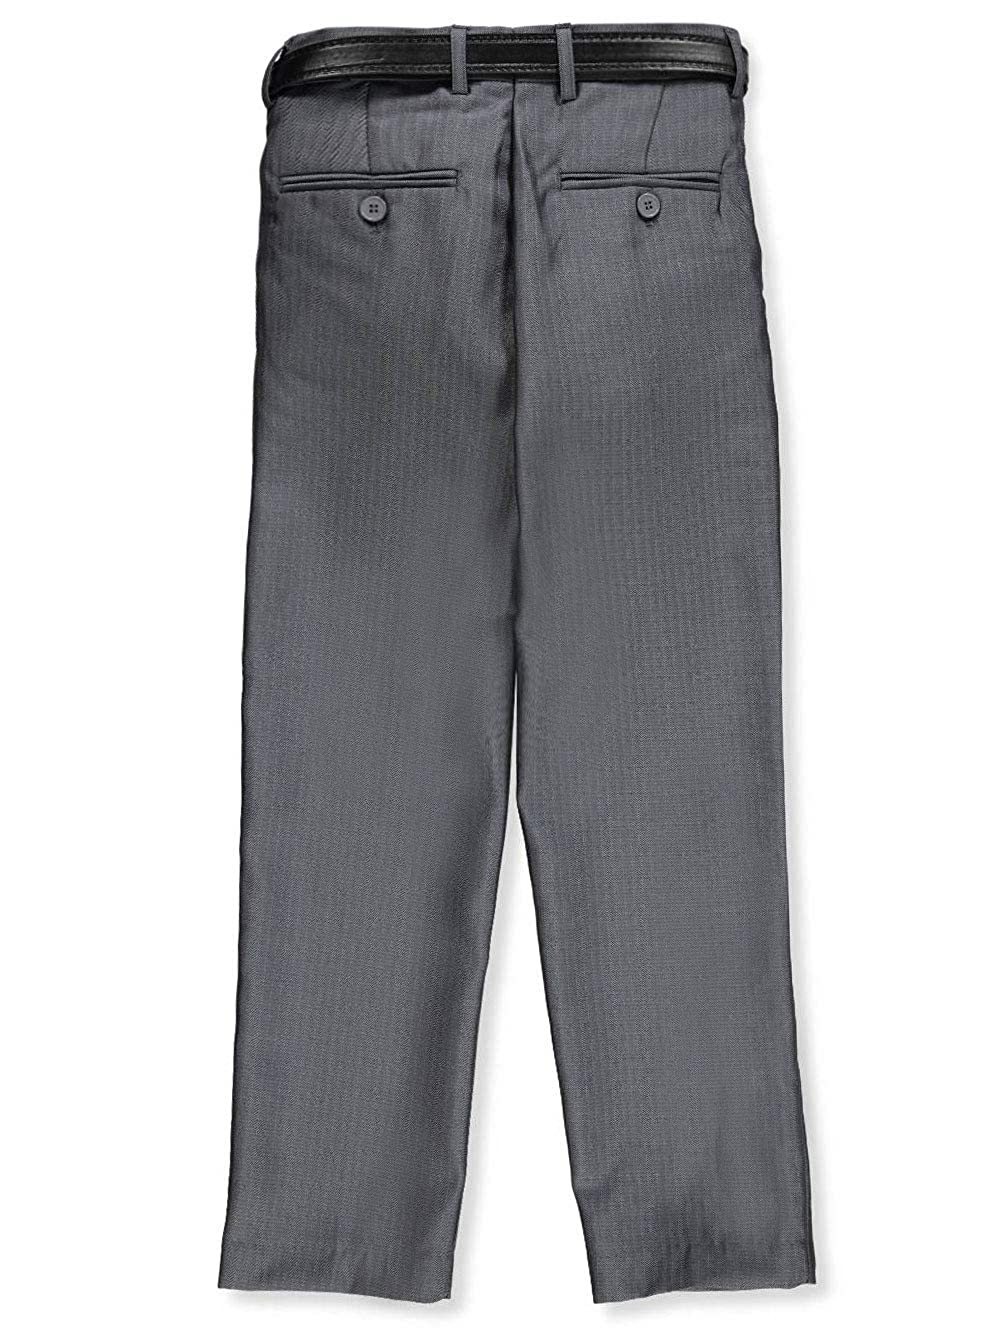 Alberto Danelli Boys Tailored Belted Flat Front Dress Pants